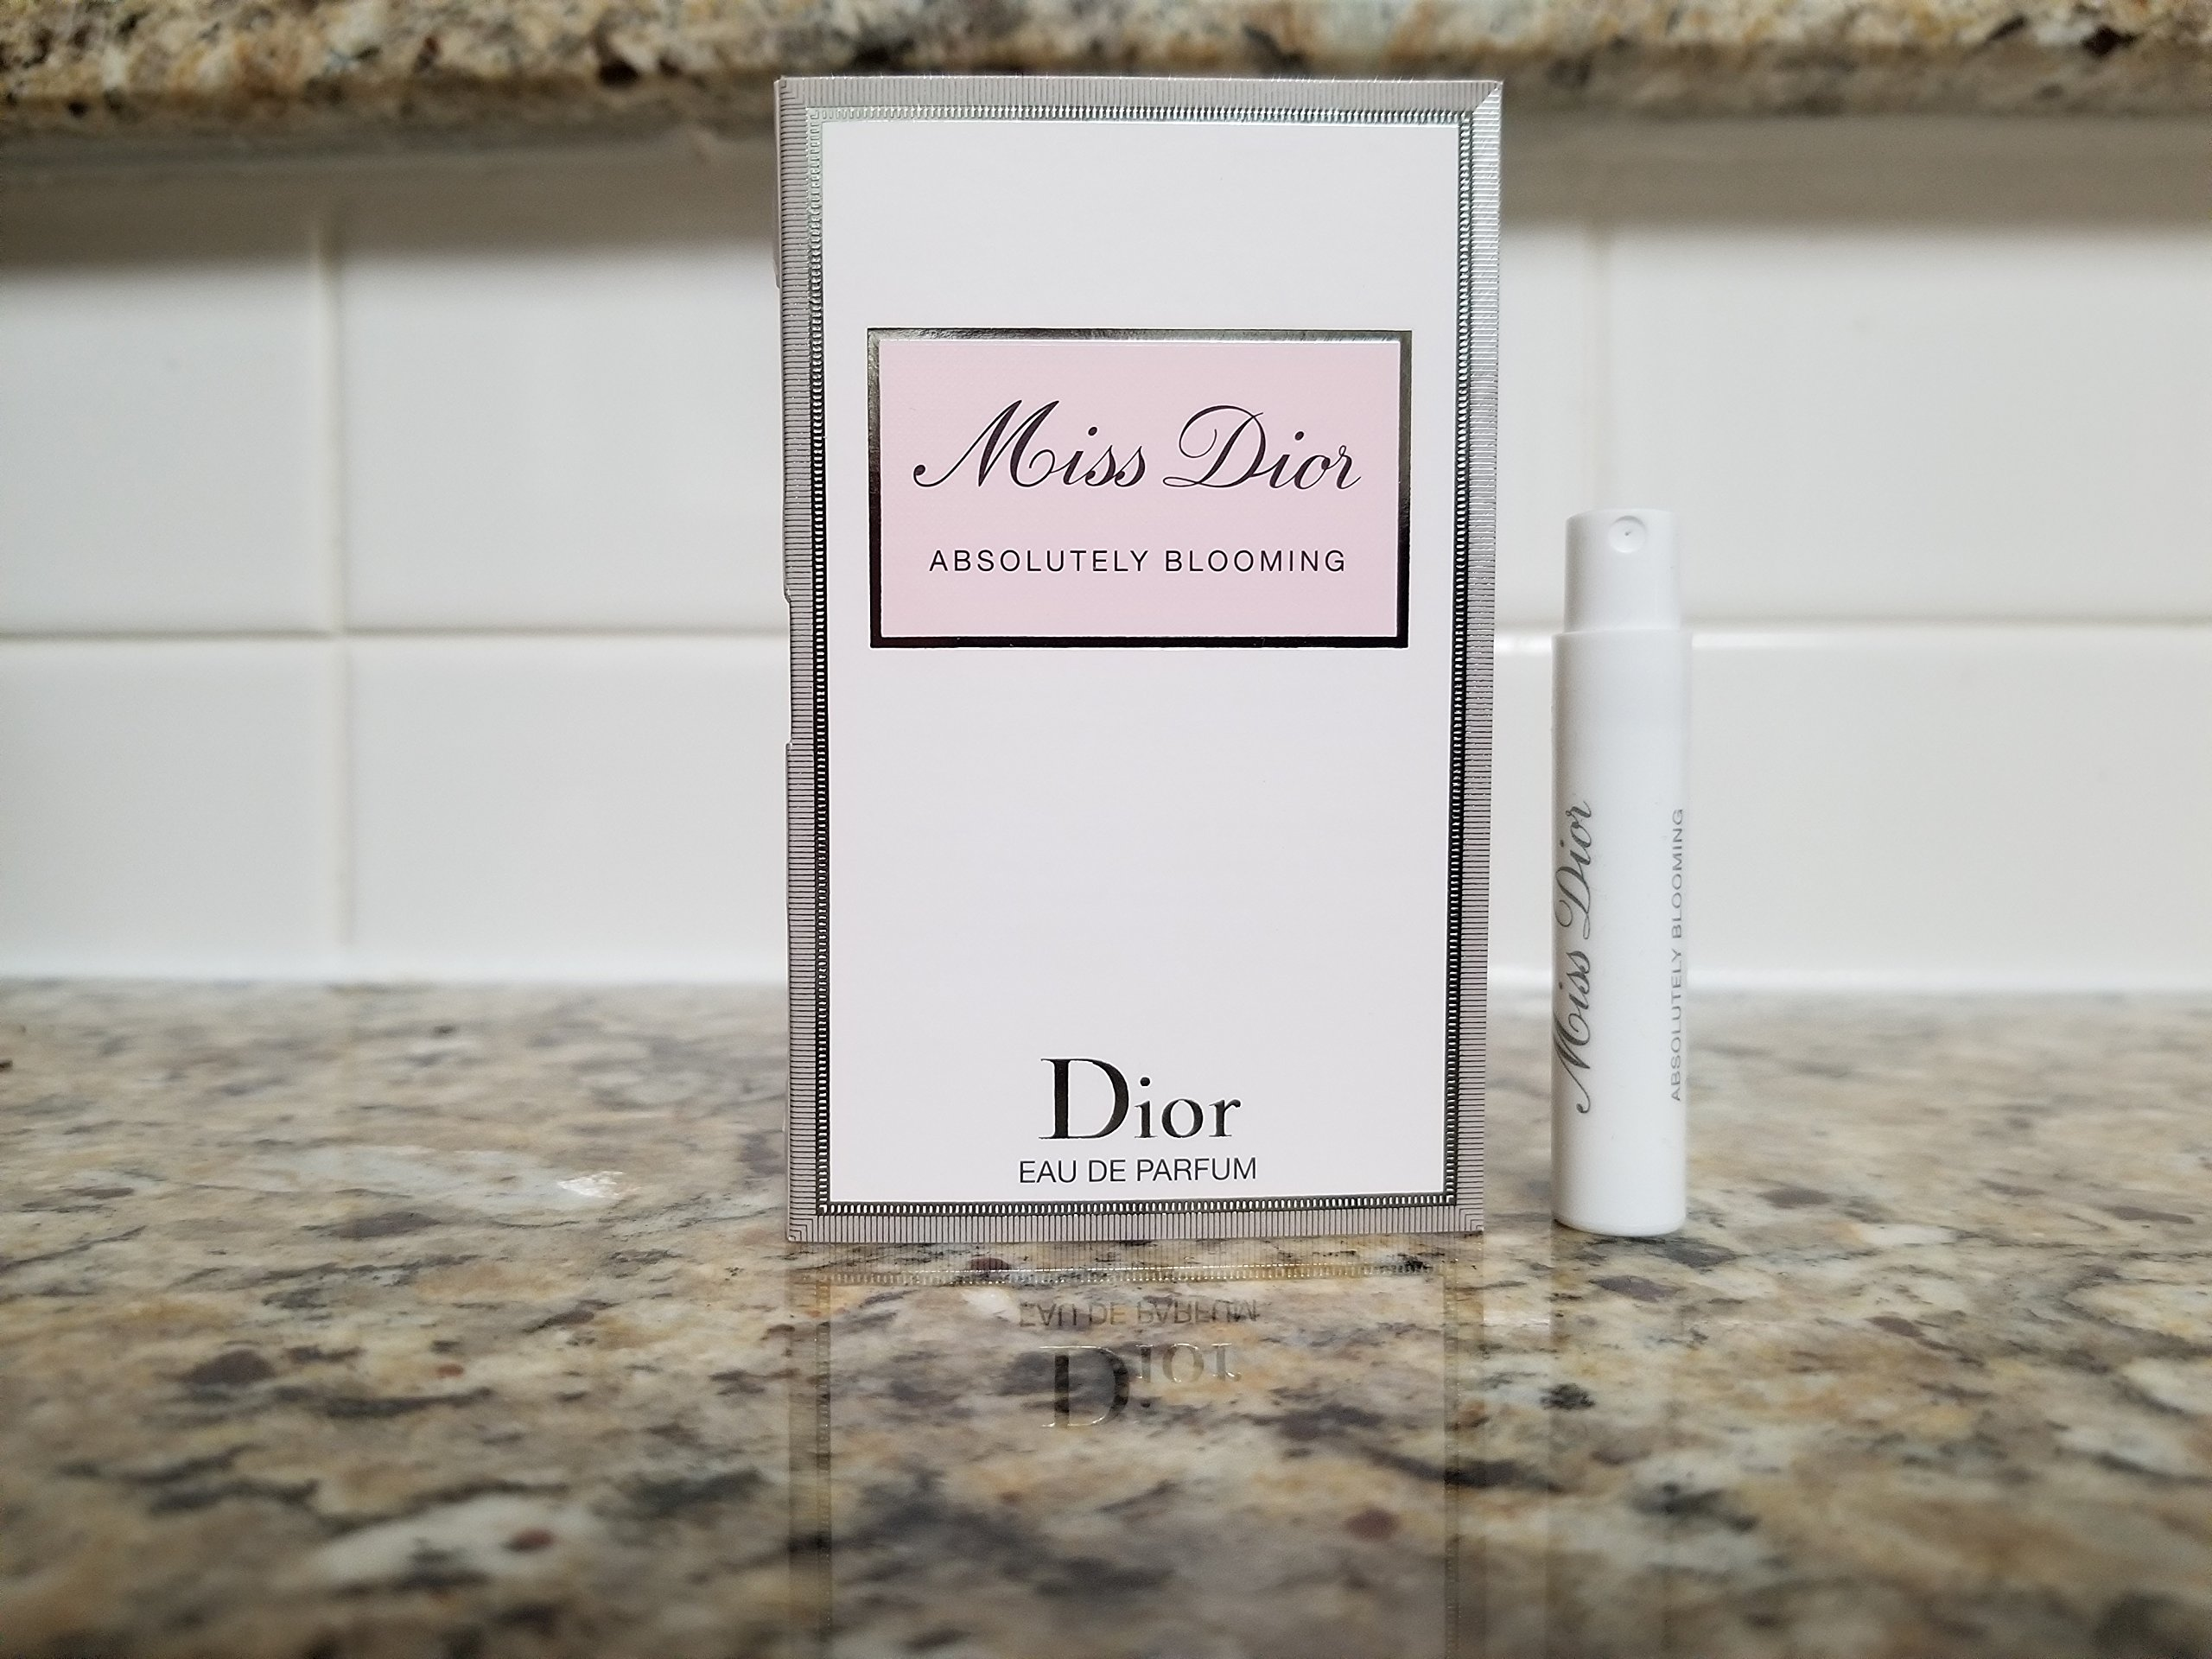 aa068673beb Amazon.com   Christian Dior Miss Dior Absolutely Blooming Women s ...